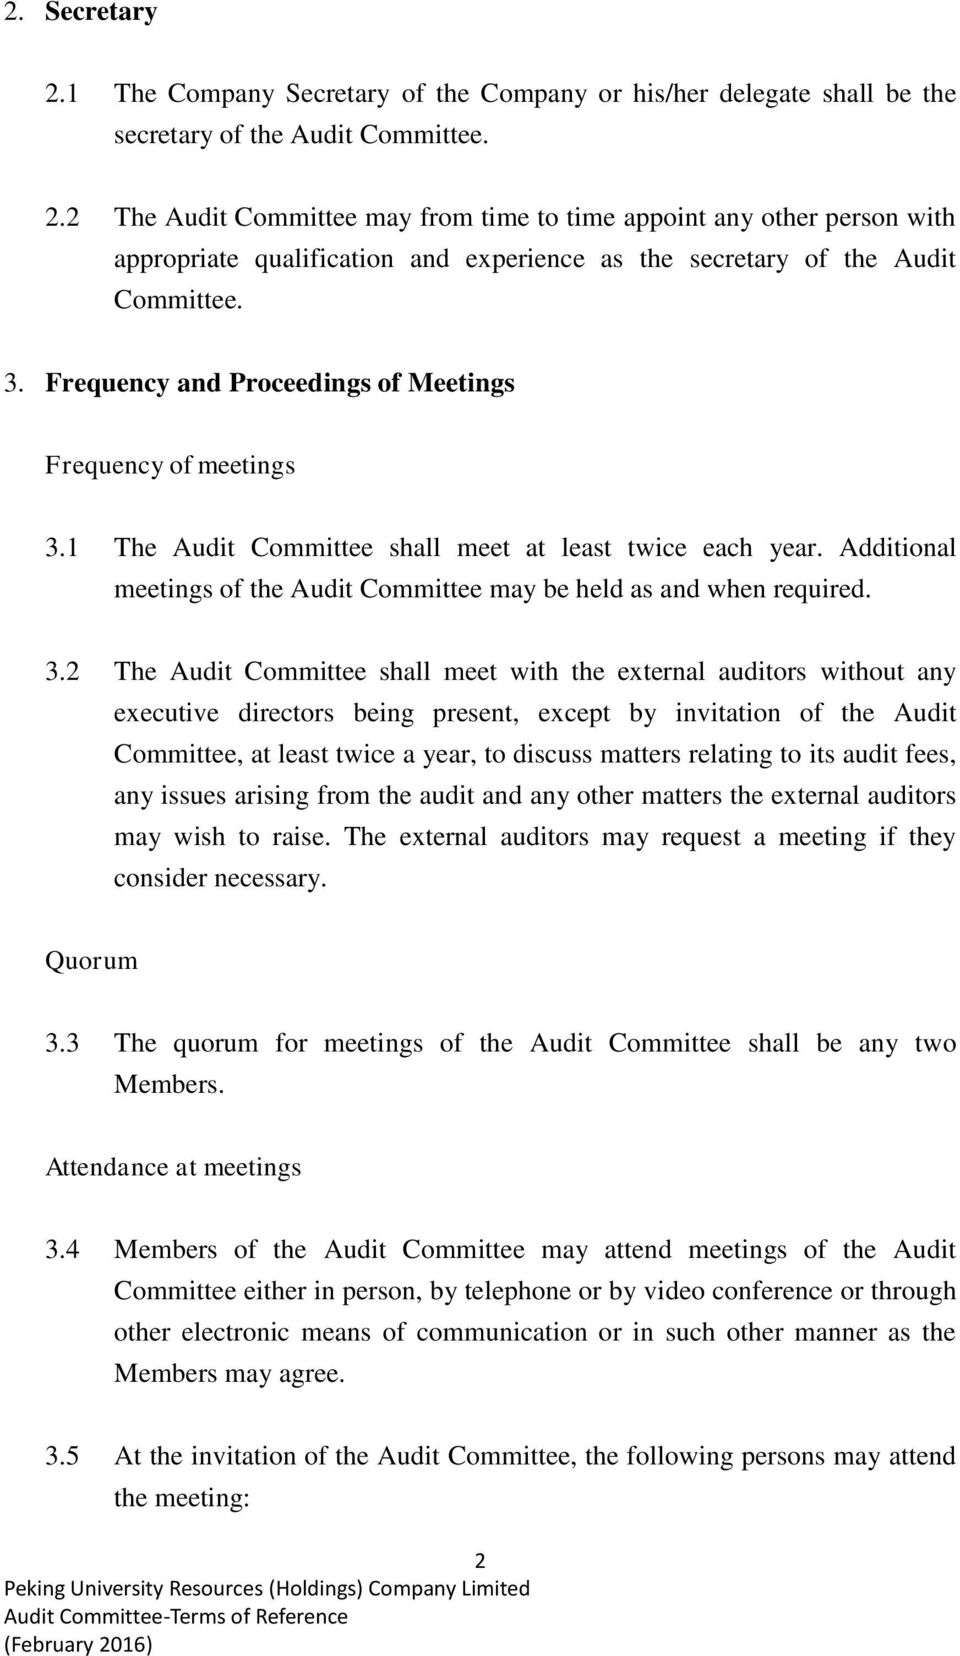 3.2 The Audit Committee shall meet with the external auditors without any executive directors being present, except by invitation of the Audit Committee, at least twice a year, to discuss matters